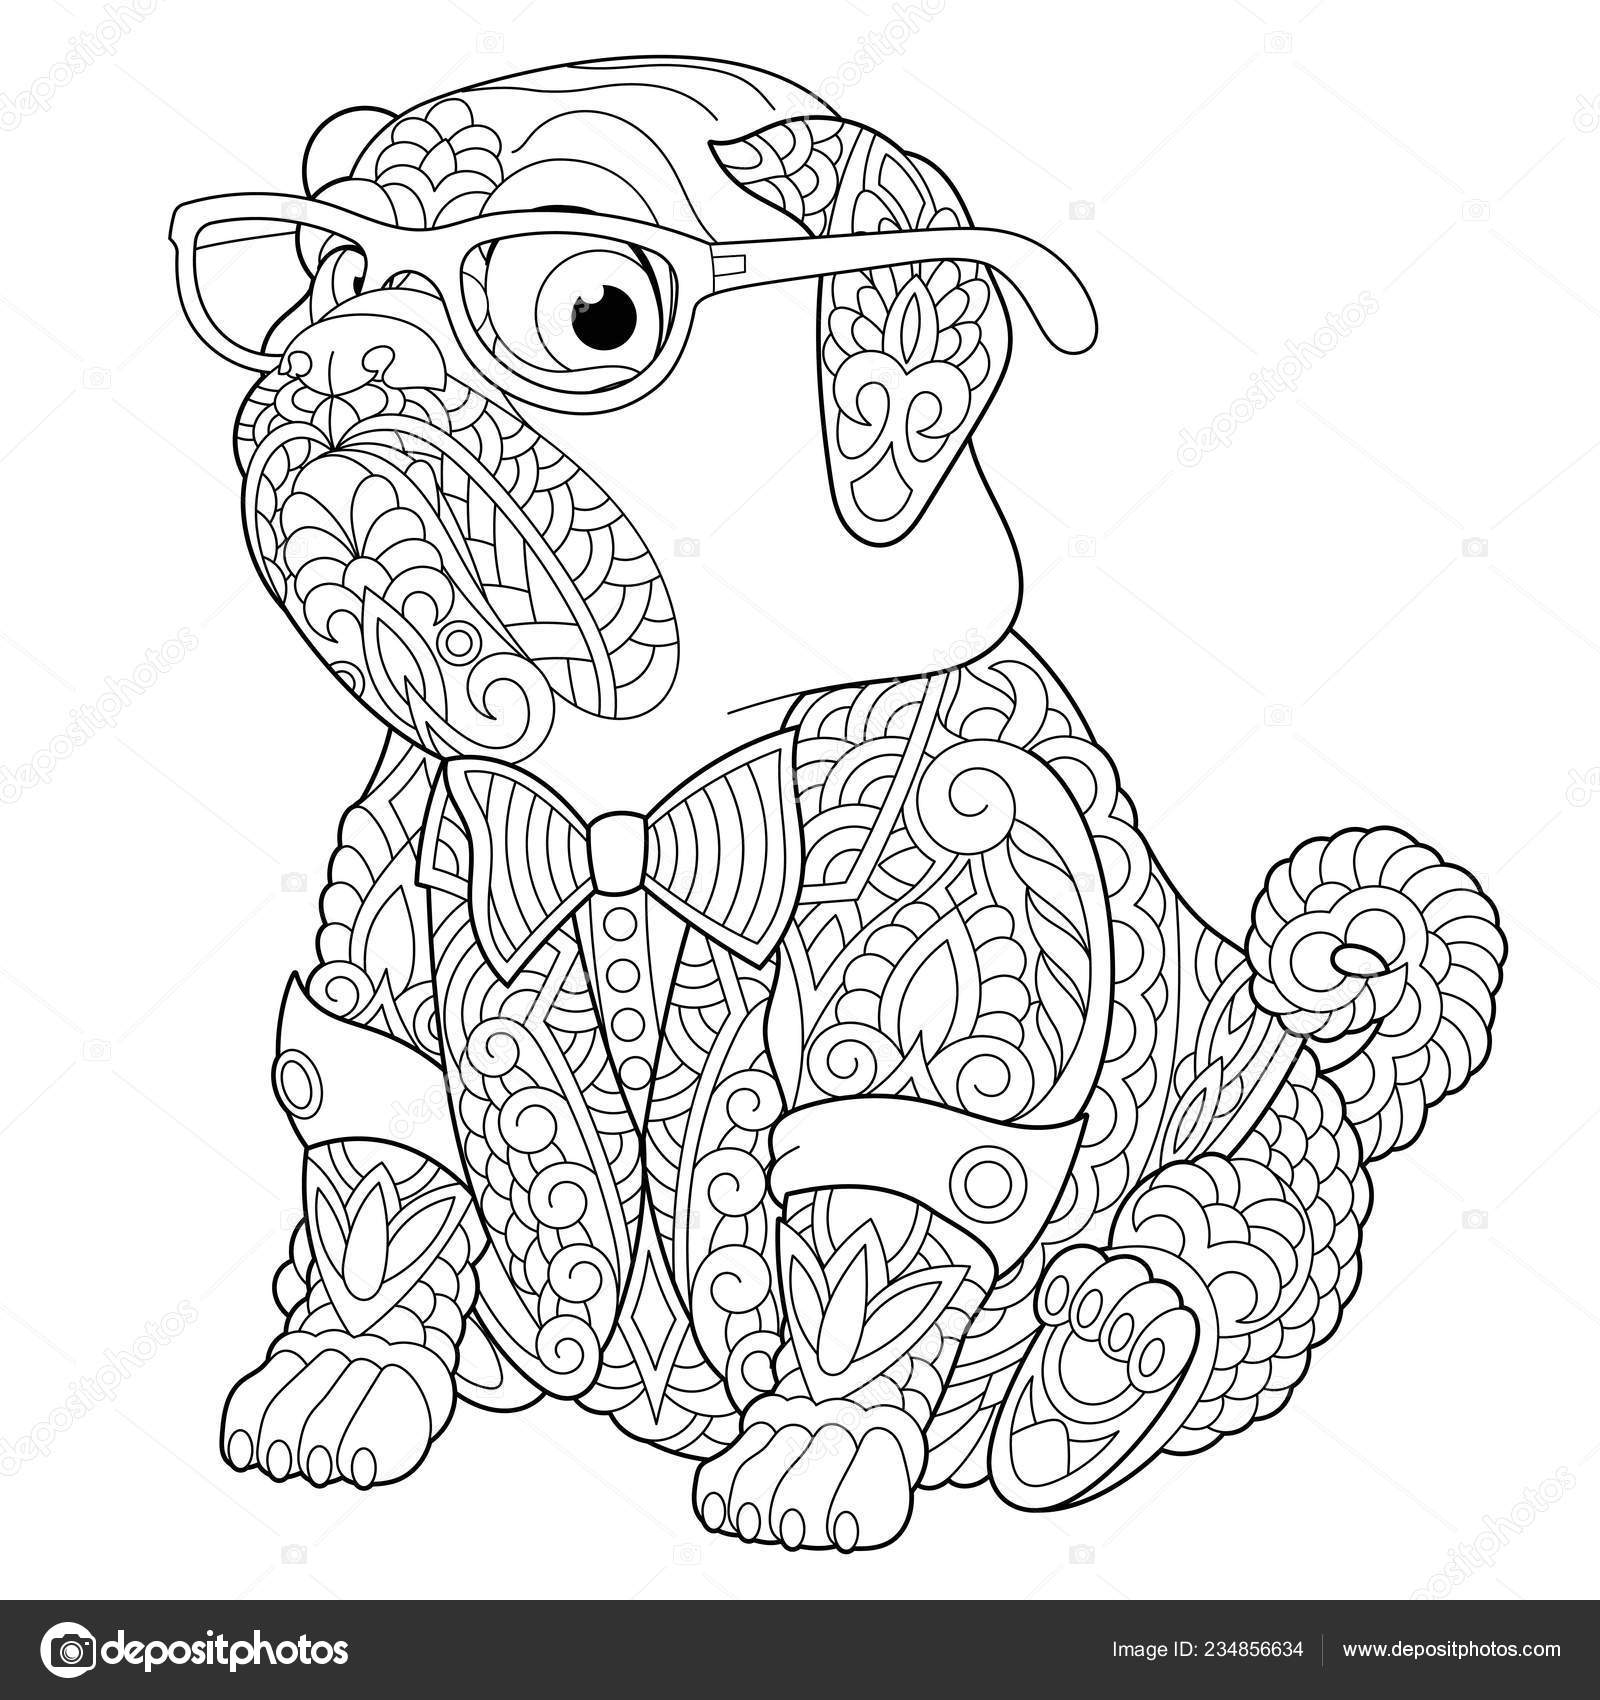 depositphotos stock illustration coloring page stress colouring picture